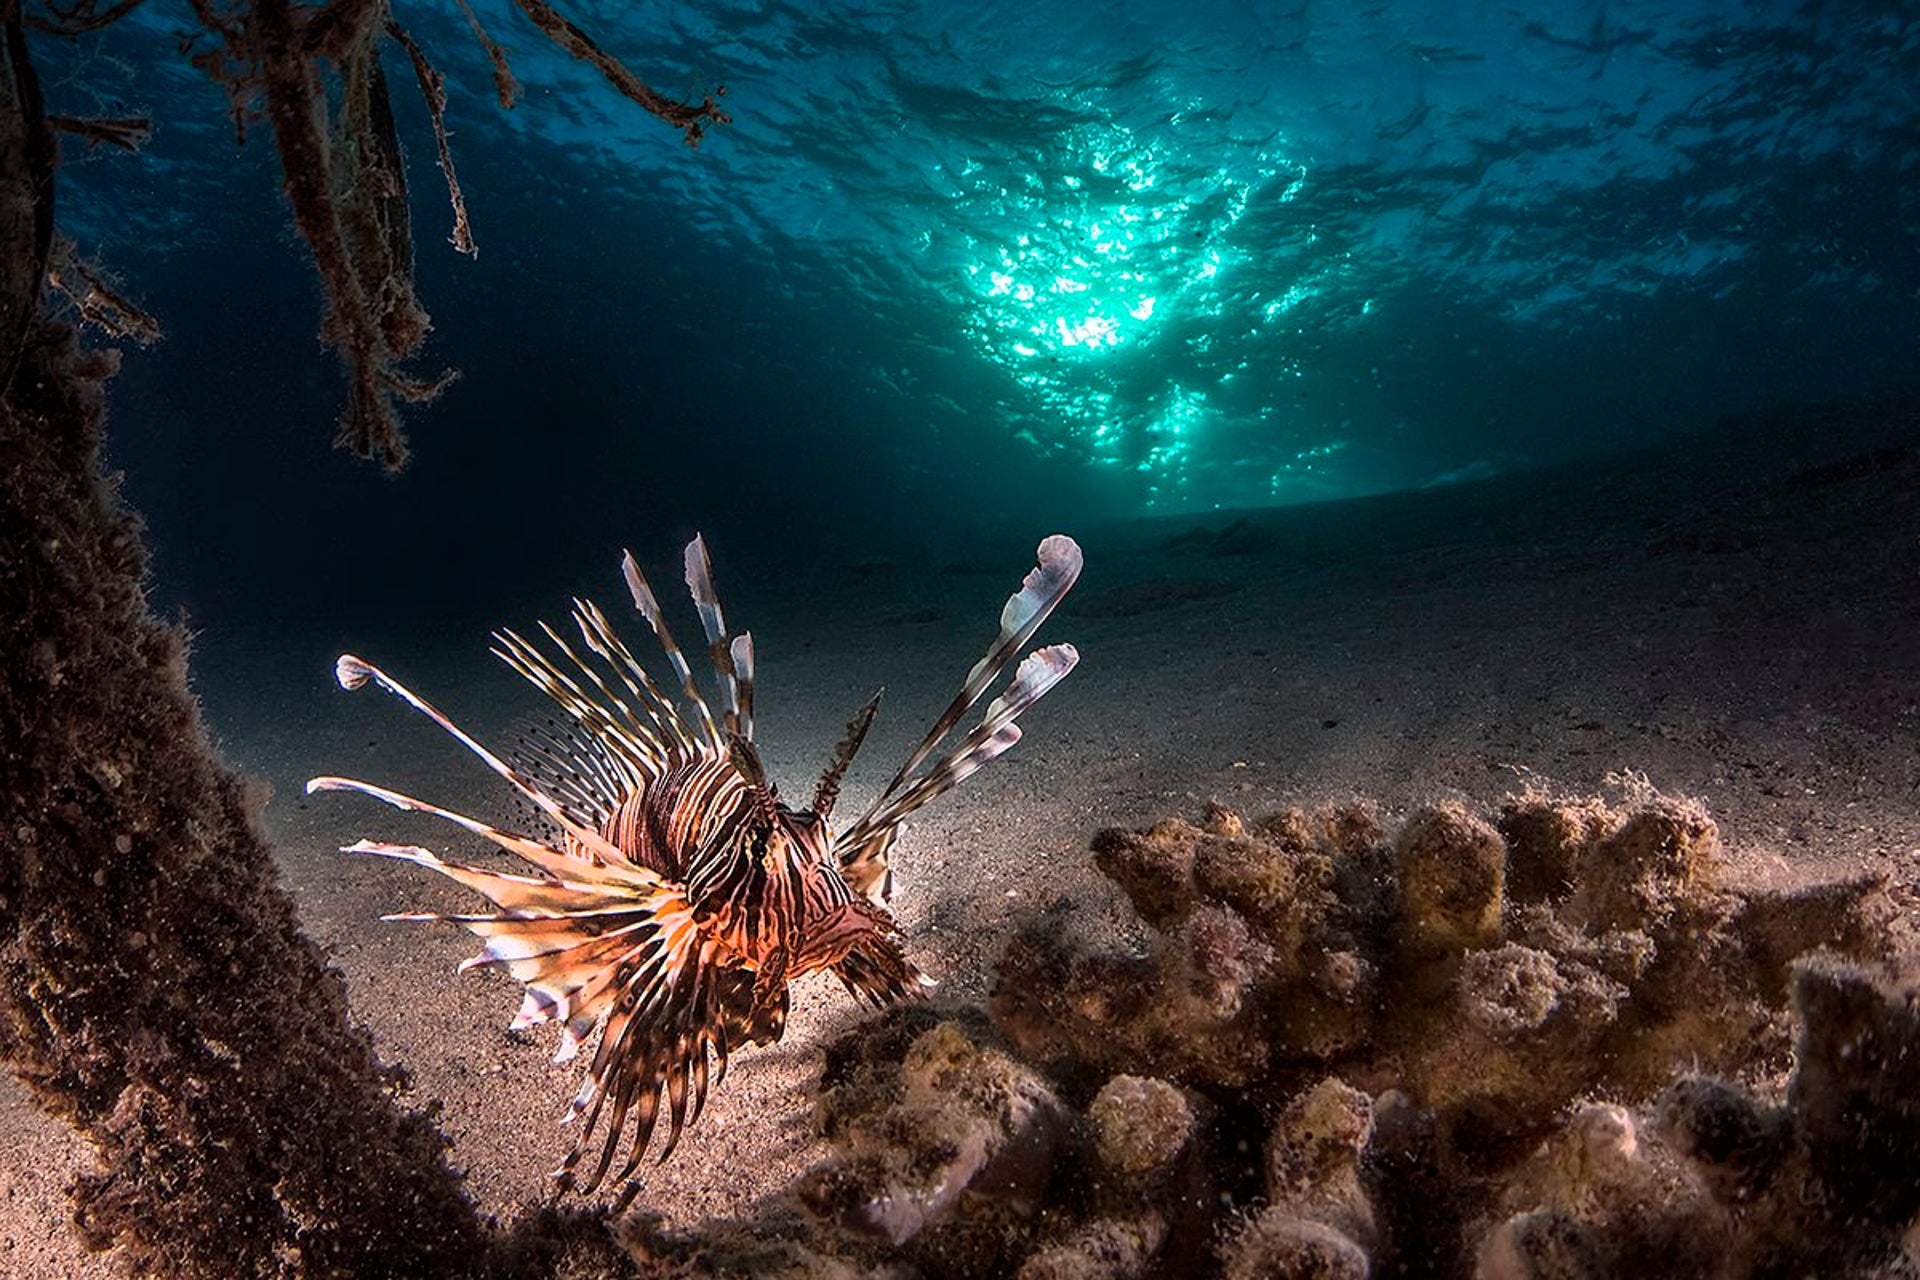 A lionfish at rest, Eilat, November 2013 (First Prize in Underwater category).